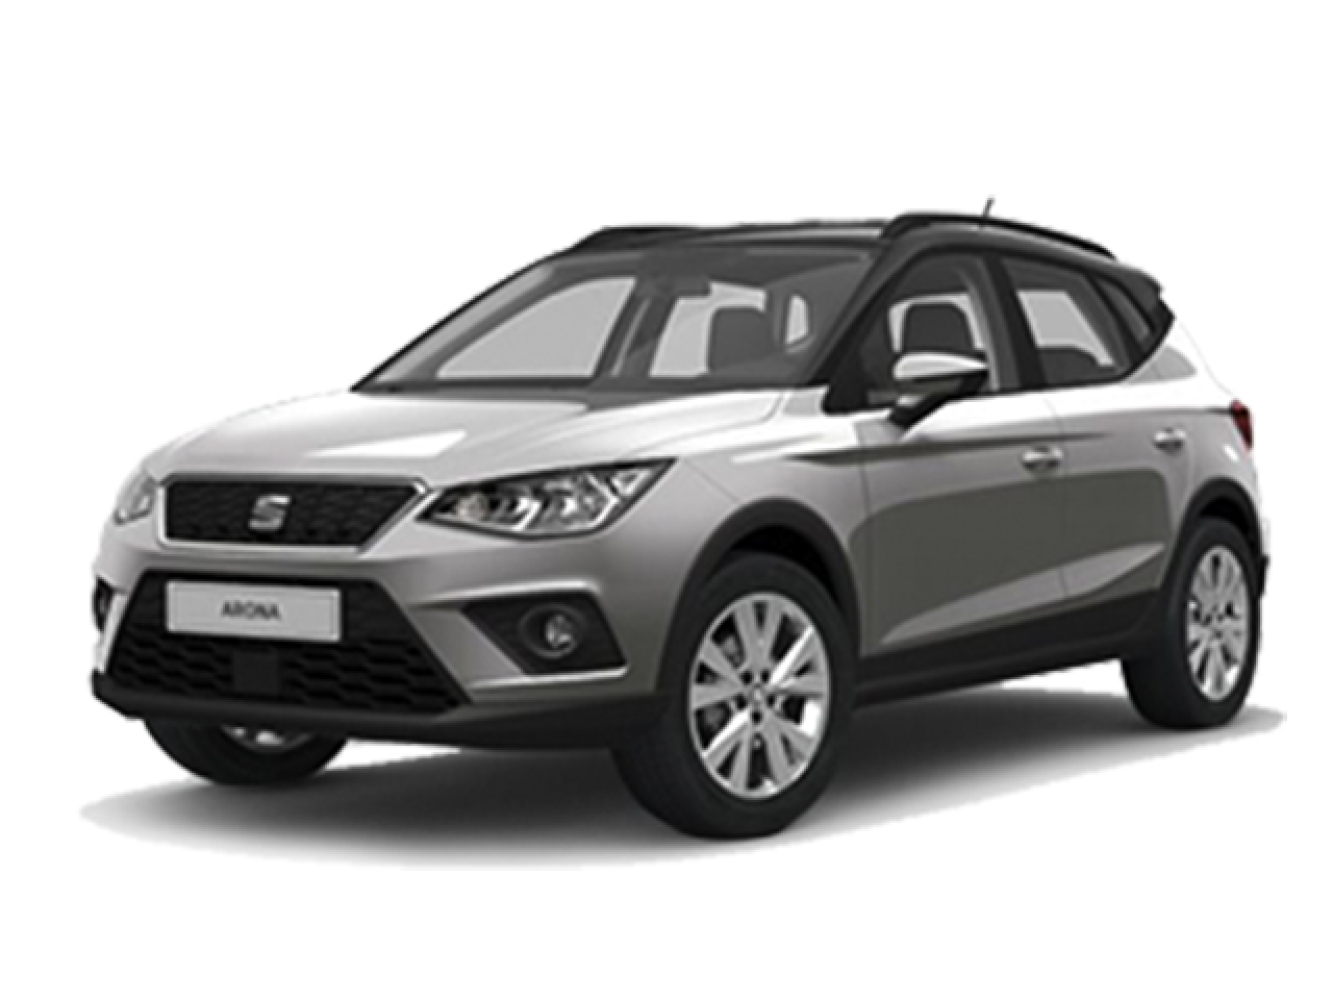 Arona Se Technology New Seat Arona 1 6 Tdi 115 Se Technology Lux 5dr Diesel